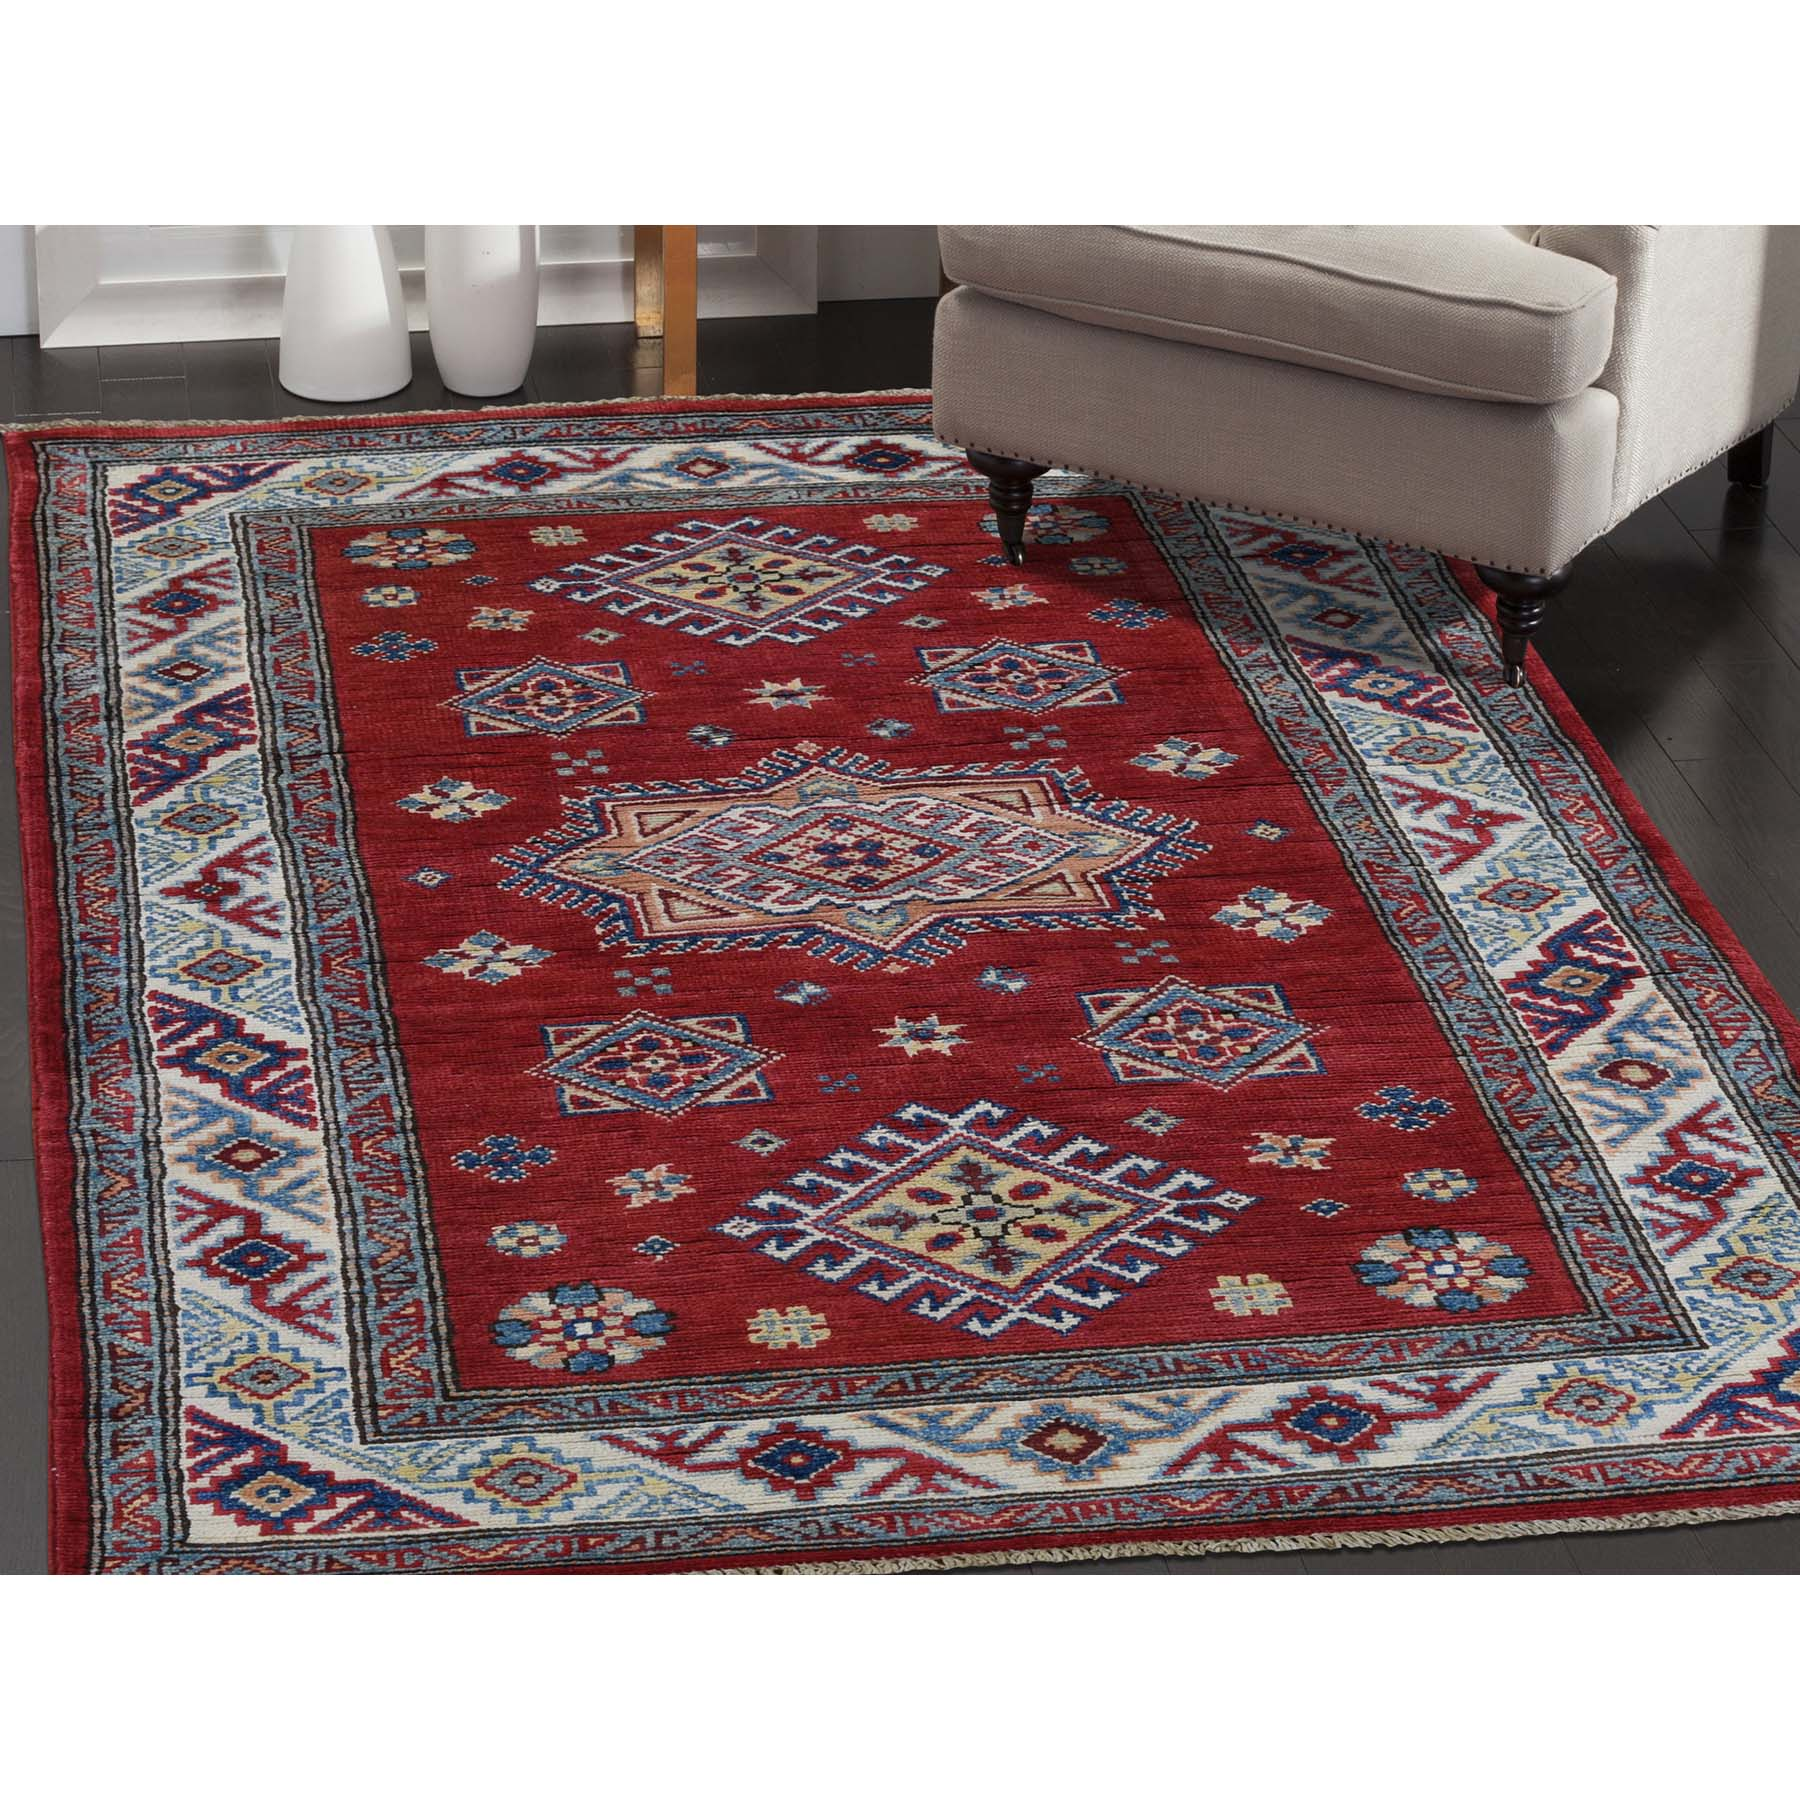 3-x4-10  Special Kazak Pure Wool Hand-Knotted Geometric Design Oriental Rug